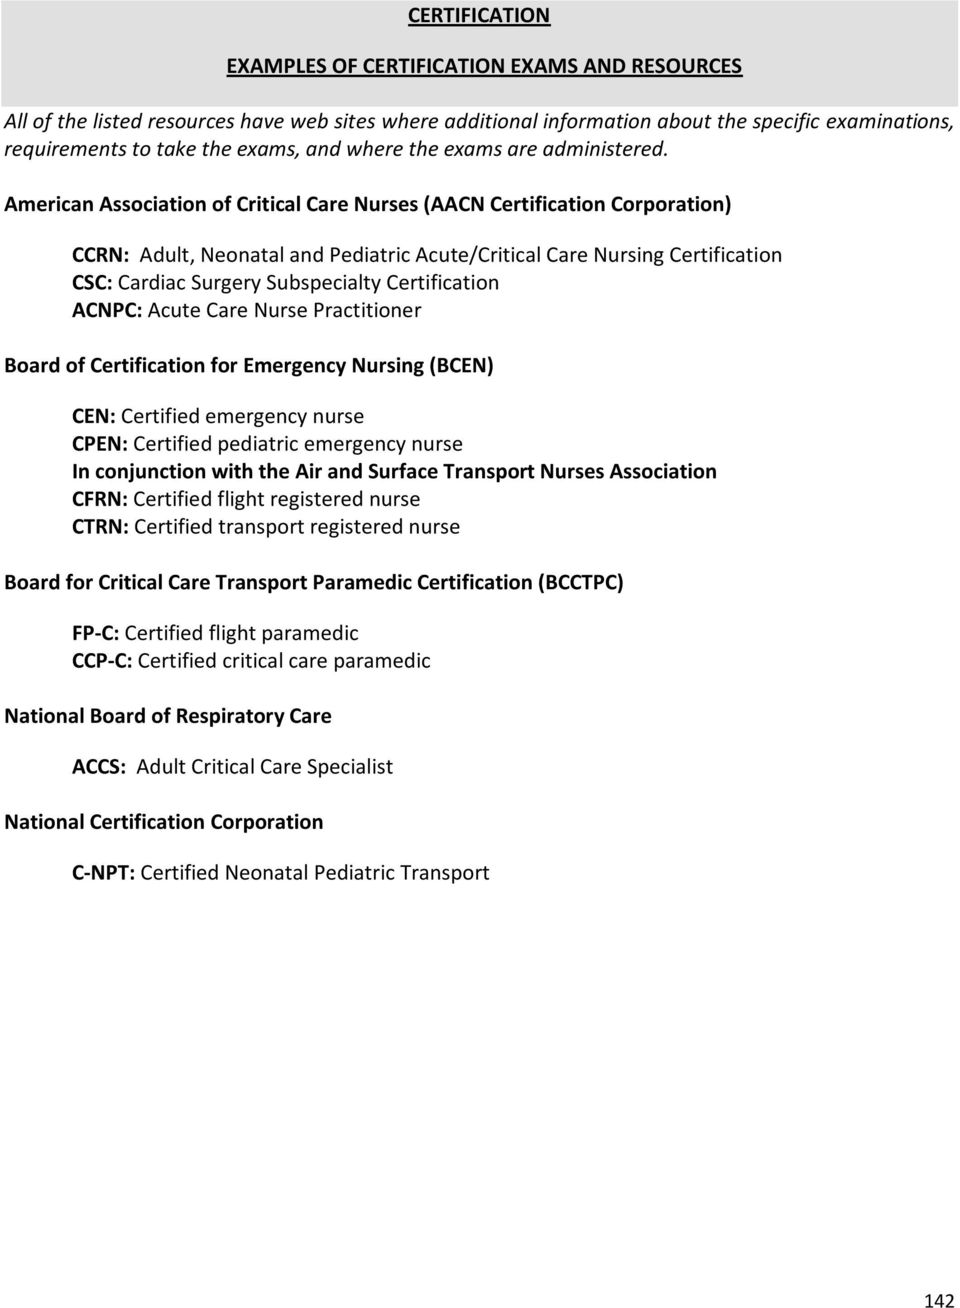 American Association of Nurses (AACN Certification Corporation) CC: Adult, Neonatal and Pediatric Acute/ Nursing Certification CSC: Cardiac Surgery Subspecialty Certification ACNPC: Acute Nurse